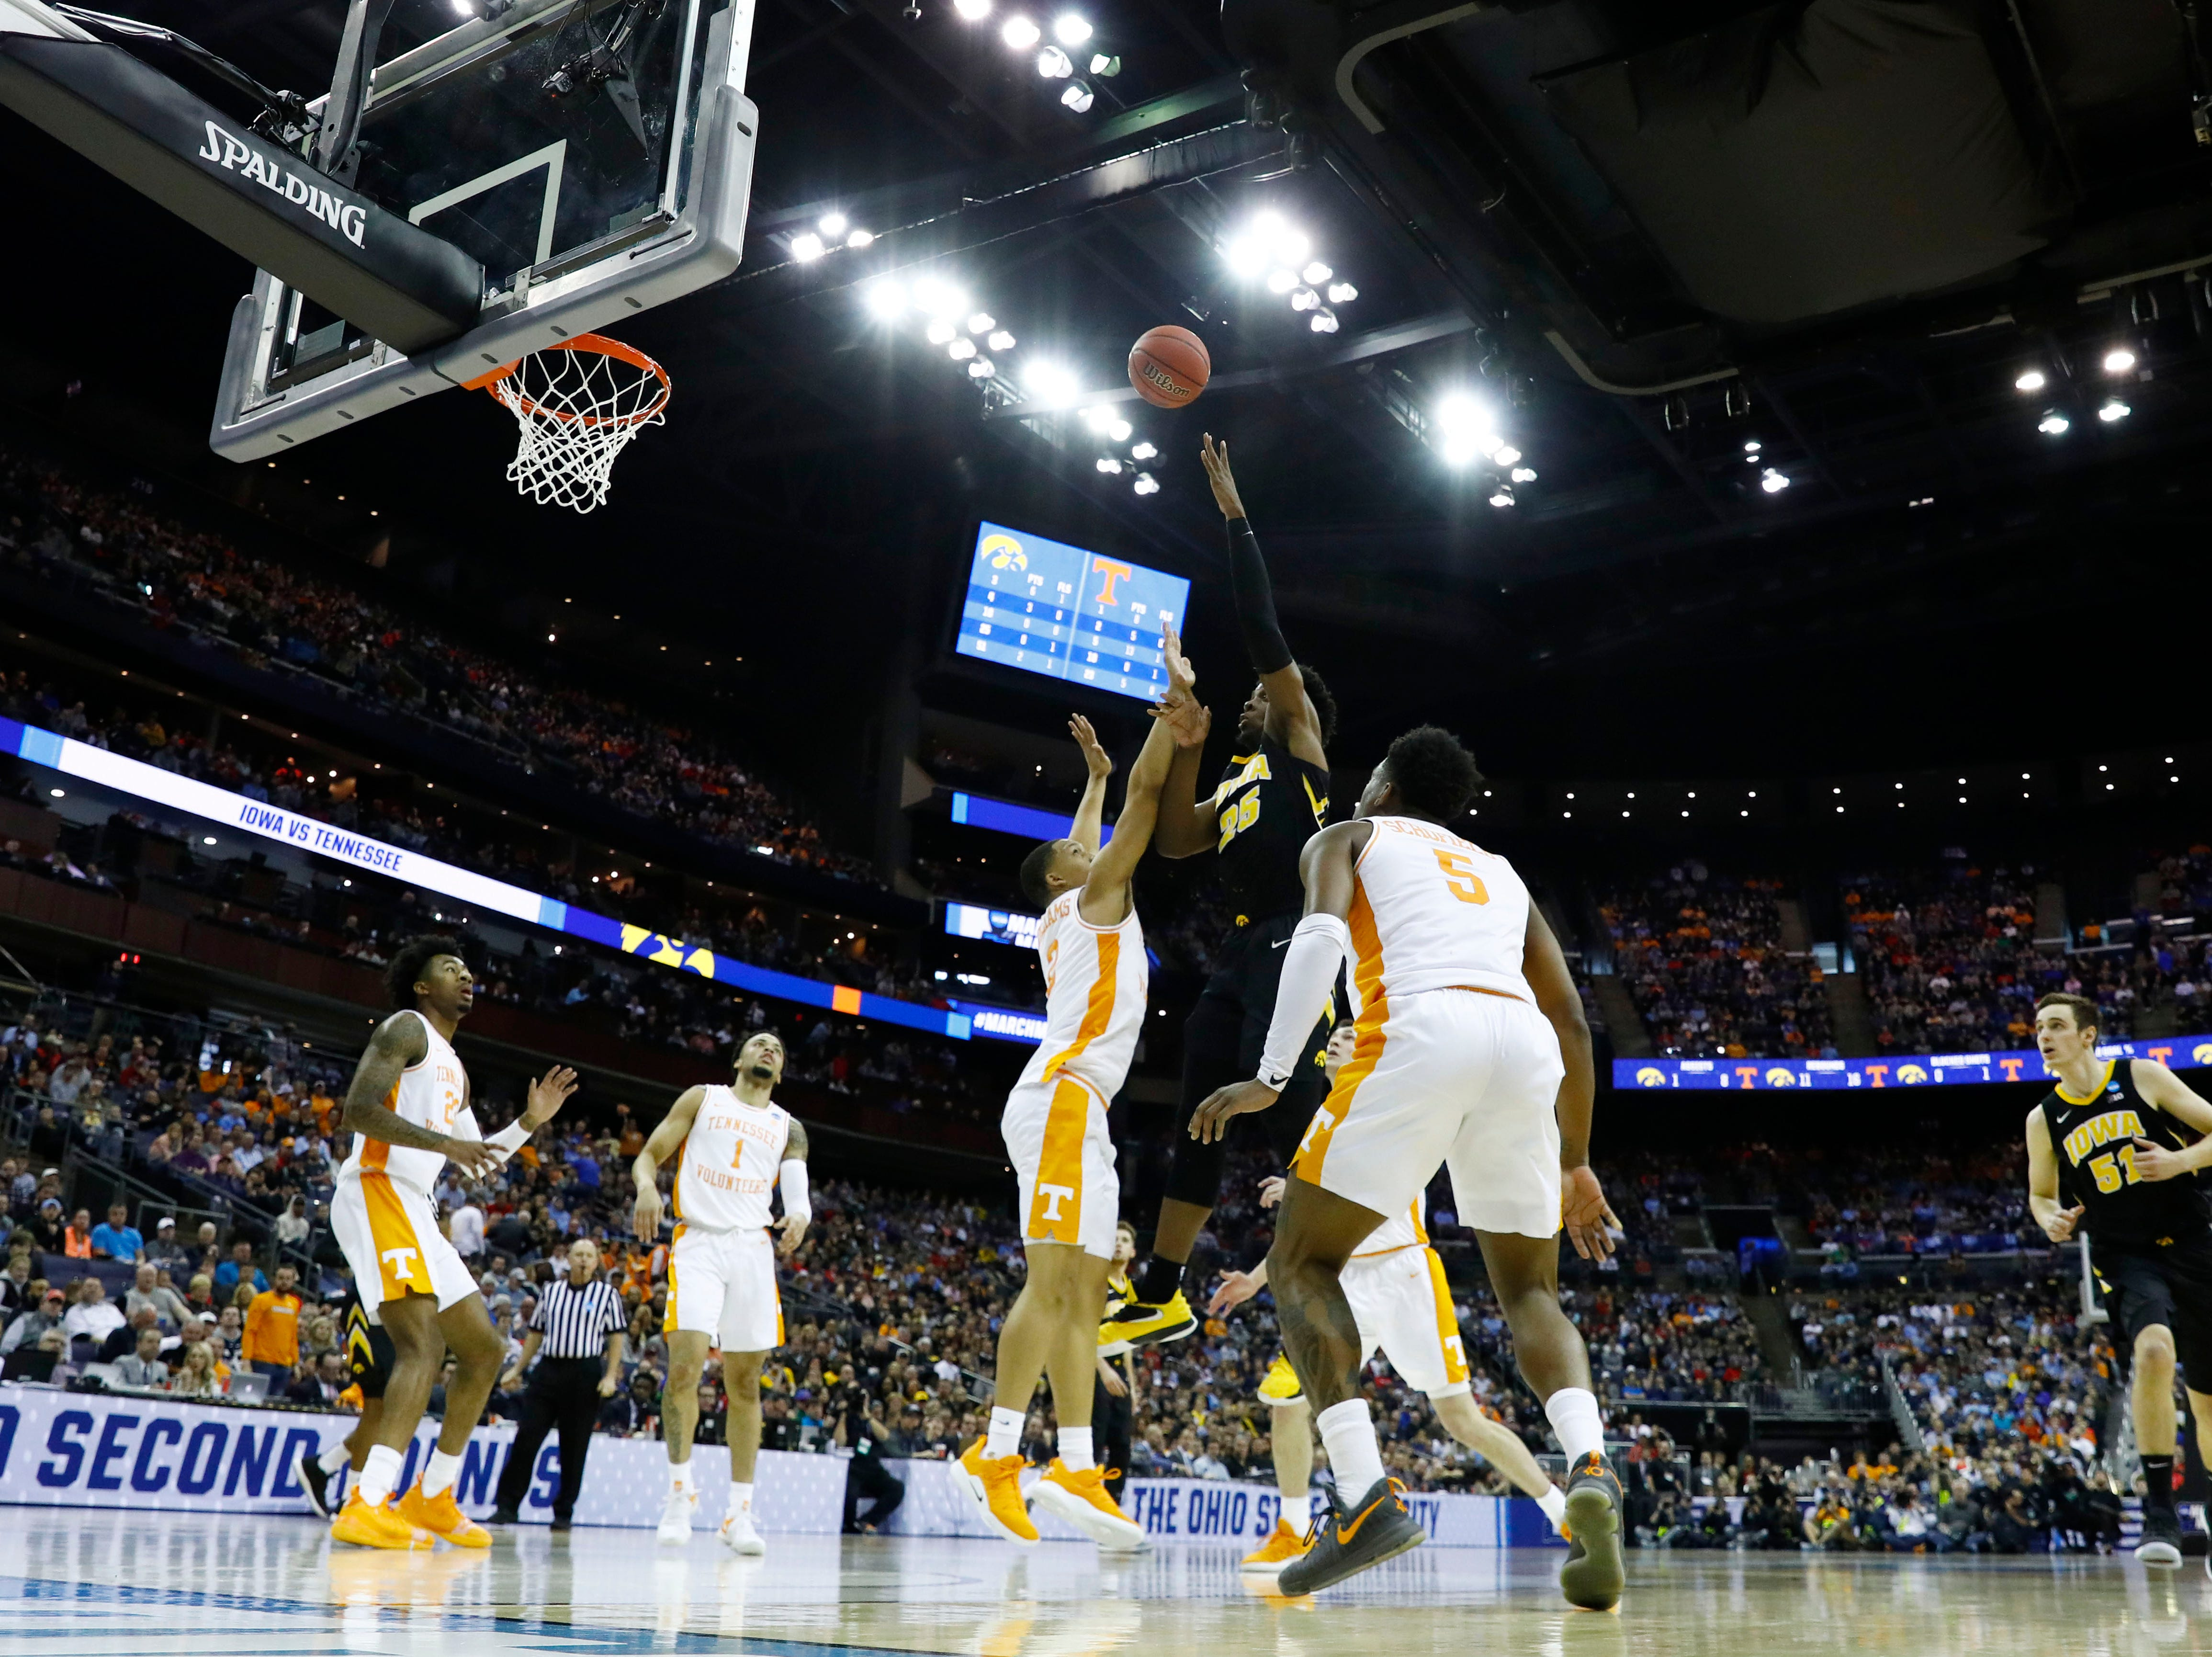 Iowa Hawkeyes forward Tyler Cook (25) shoots the ball over Tennessee Volunteers forward Grant Williams (2) in the first half in the second round of the 2019 NCAA Tournament at Nationwide Arena.